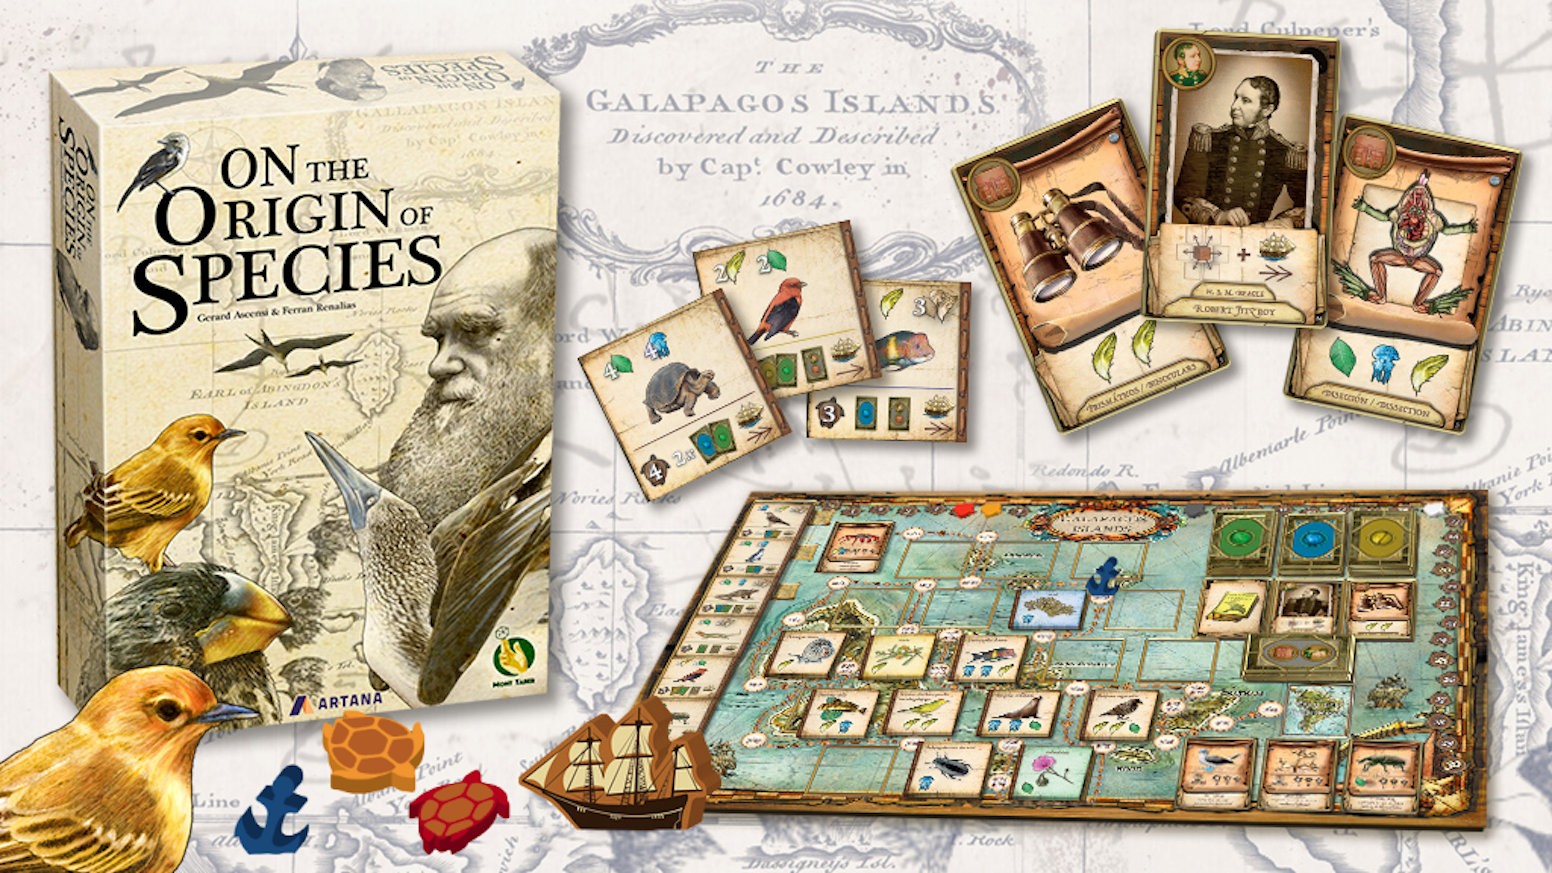 On The Origin of Species is a strategic board game about the journey of Charles Darwin through the Galapagos Islands.